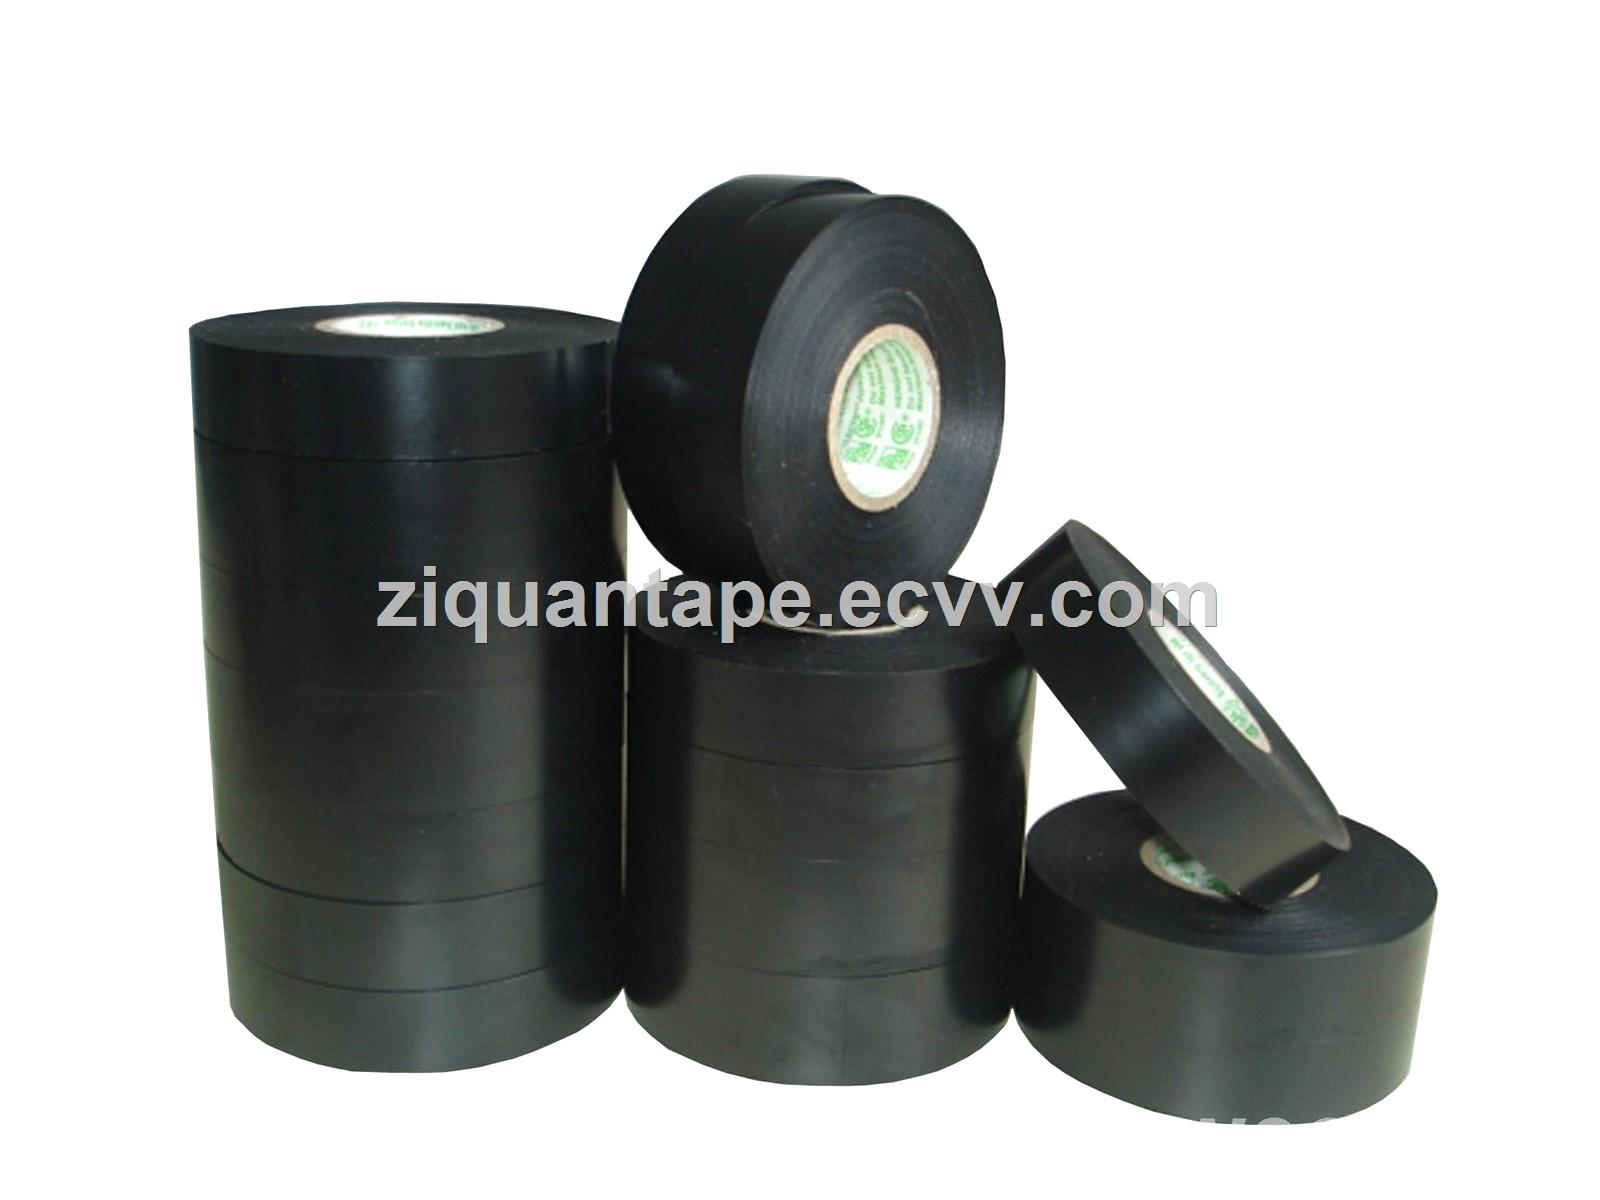 Wonder Pvc Pipe Wrapping Tapepvc Black Tape Protection Wiring Harness Wrap Main Products Electrical Warning Insulation Adhesive Packing Masking Wire Sand